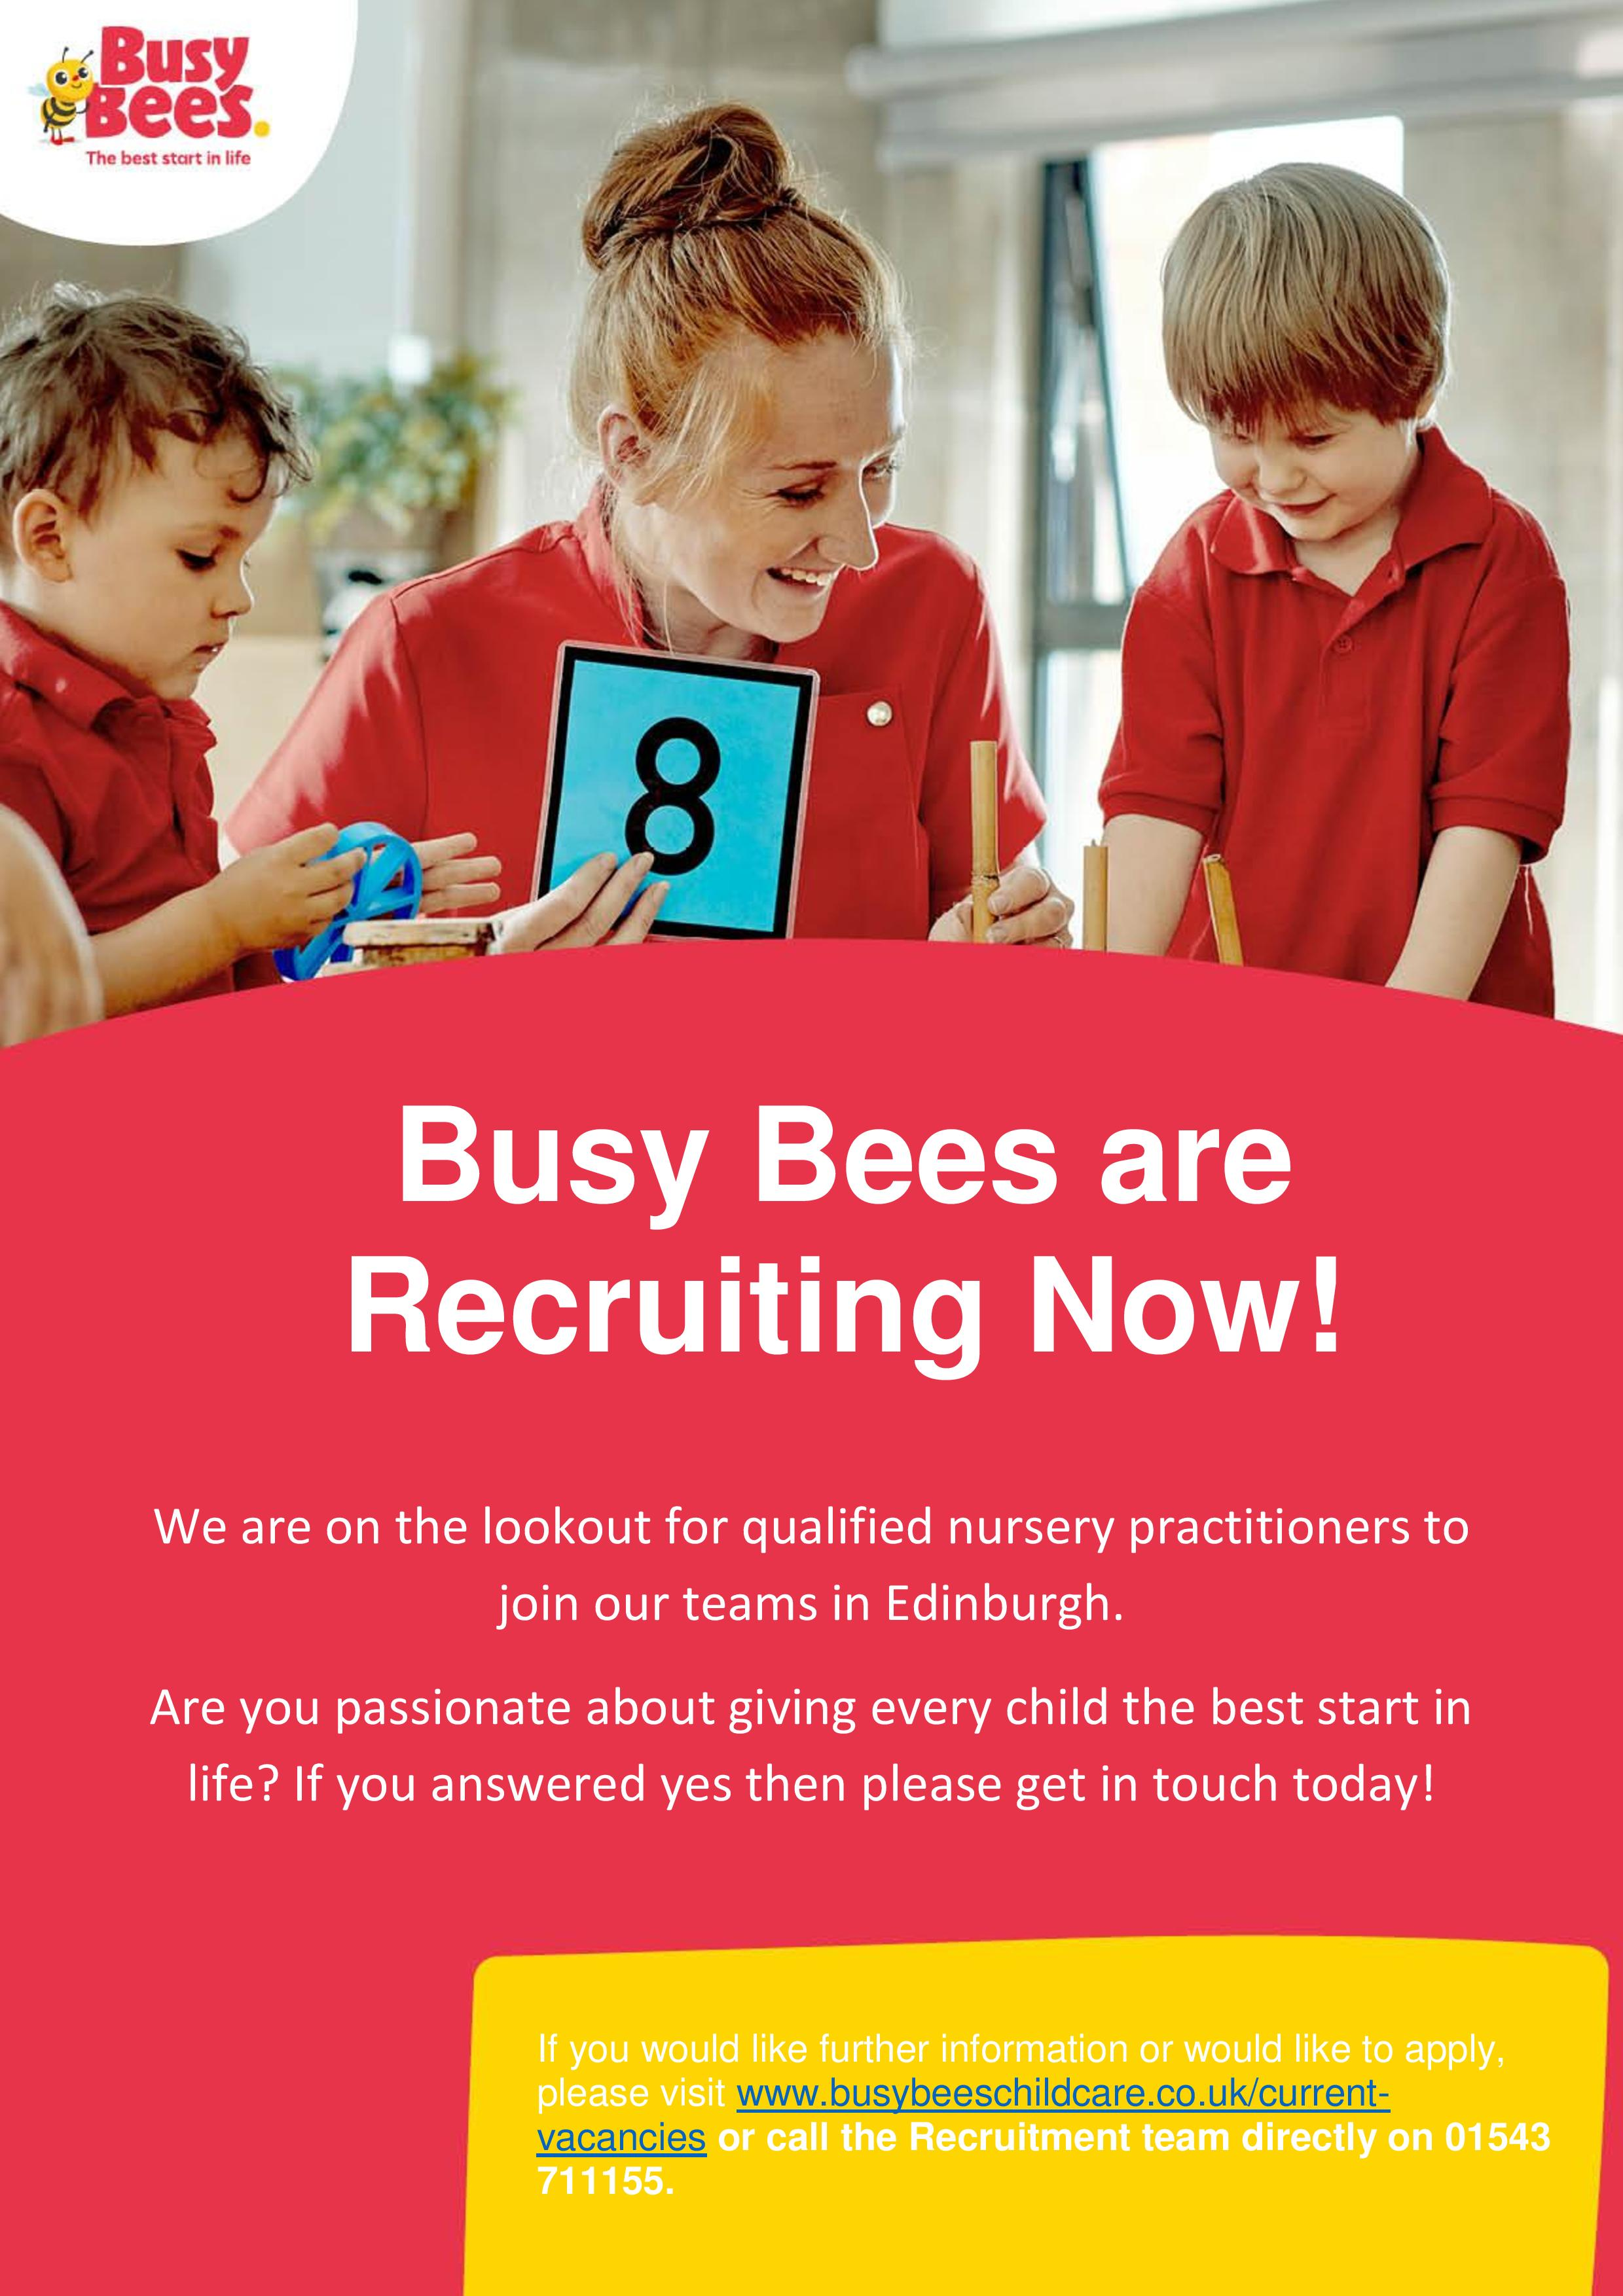 https://i1.wp.com/jobzone.edinburghcollege.ac.uk/wp-content/uploads/2019/05/busy-bees-nursery.jpg?fit=2479%2C3508&ssl=1